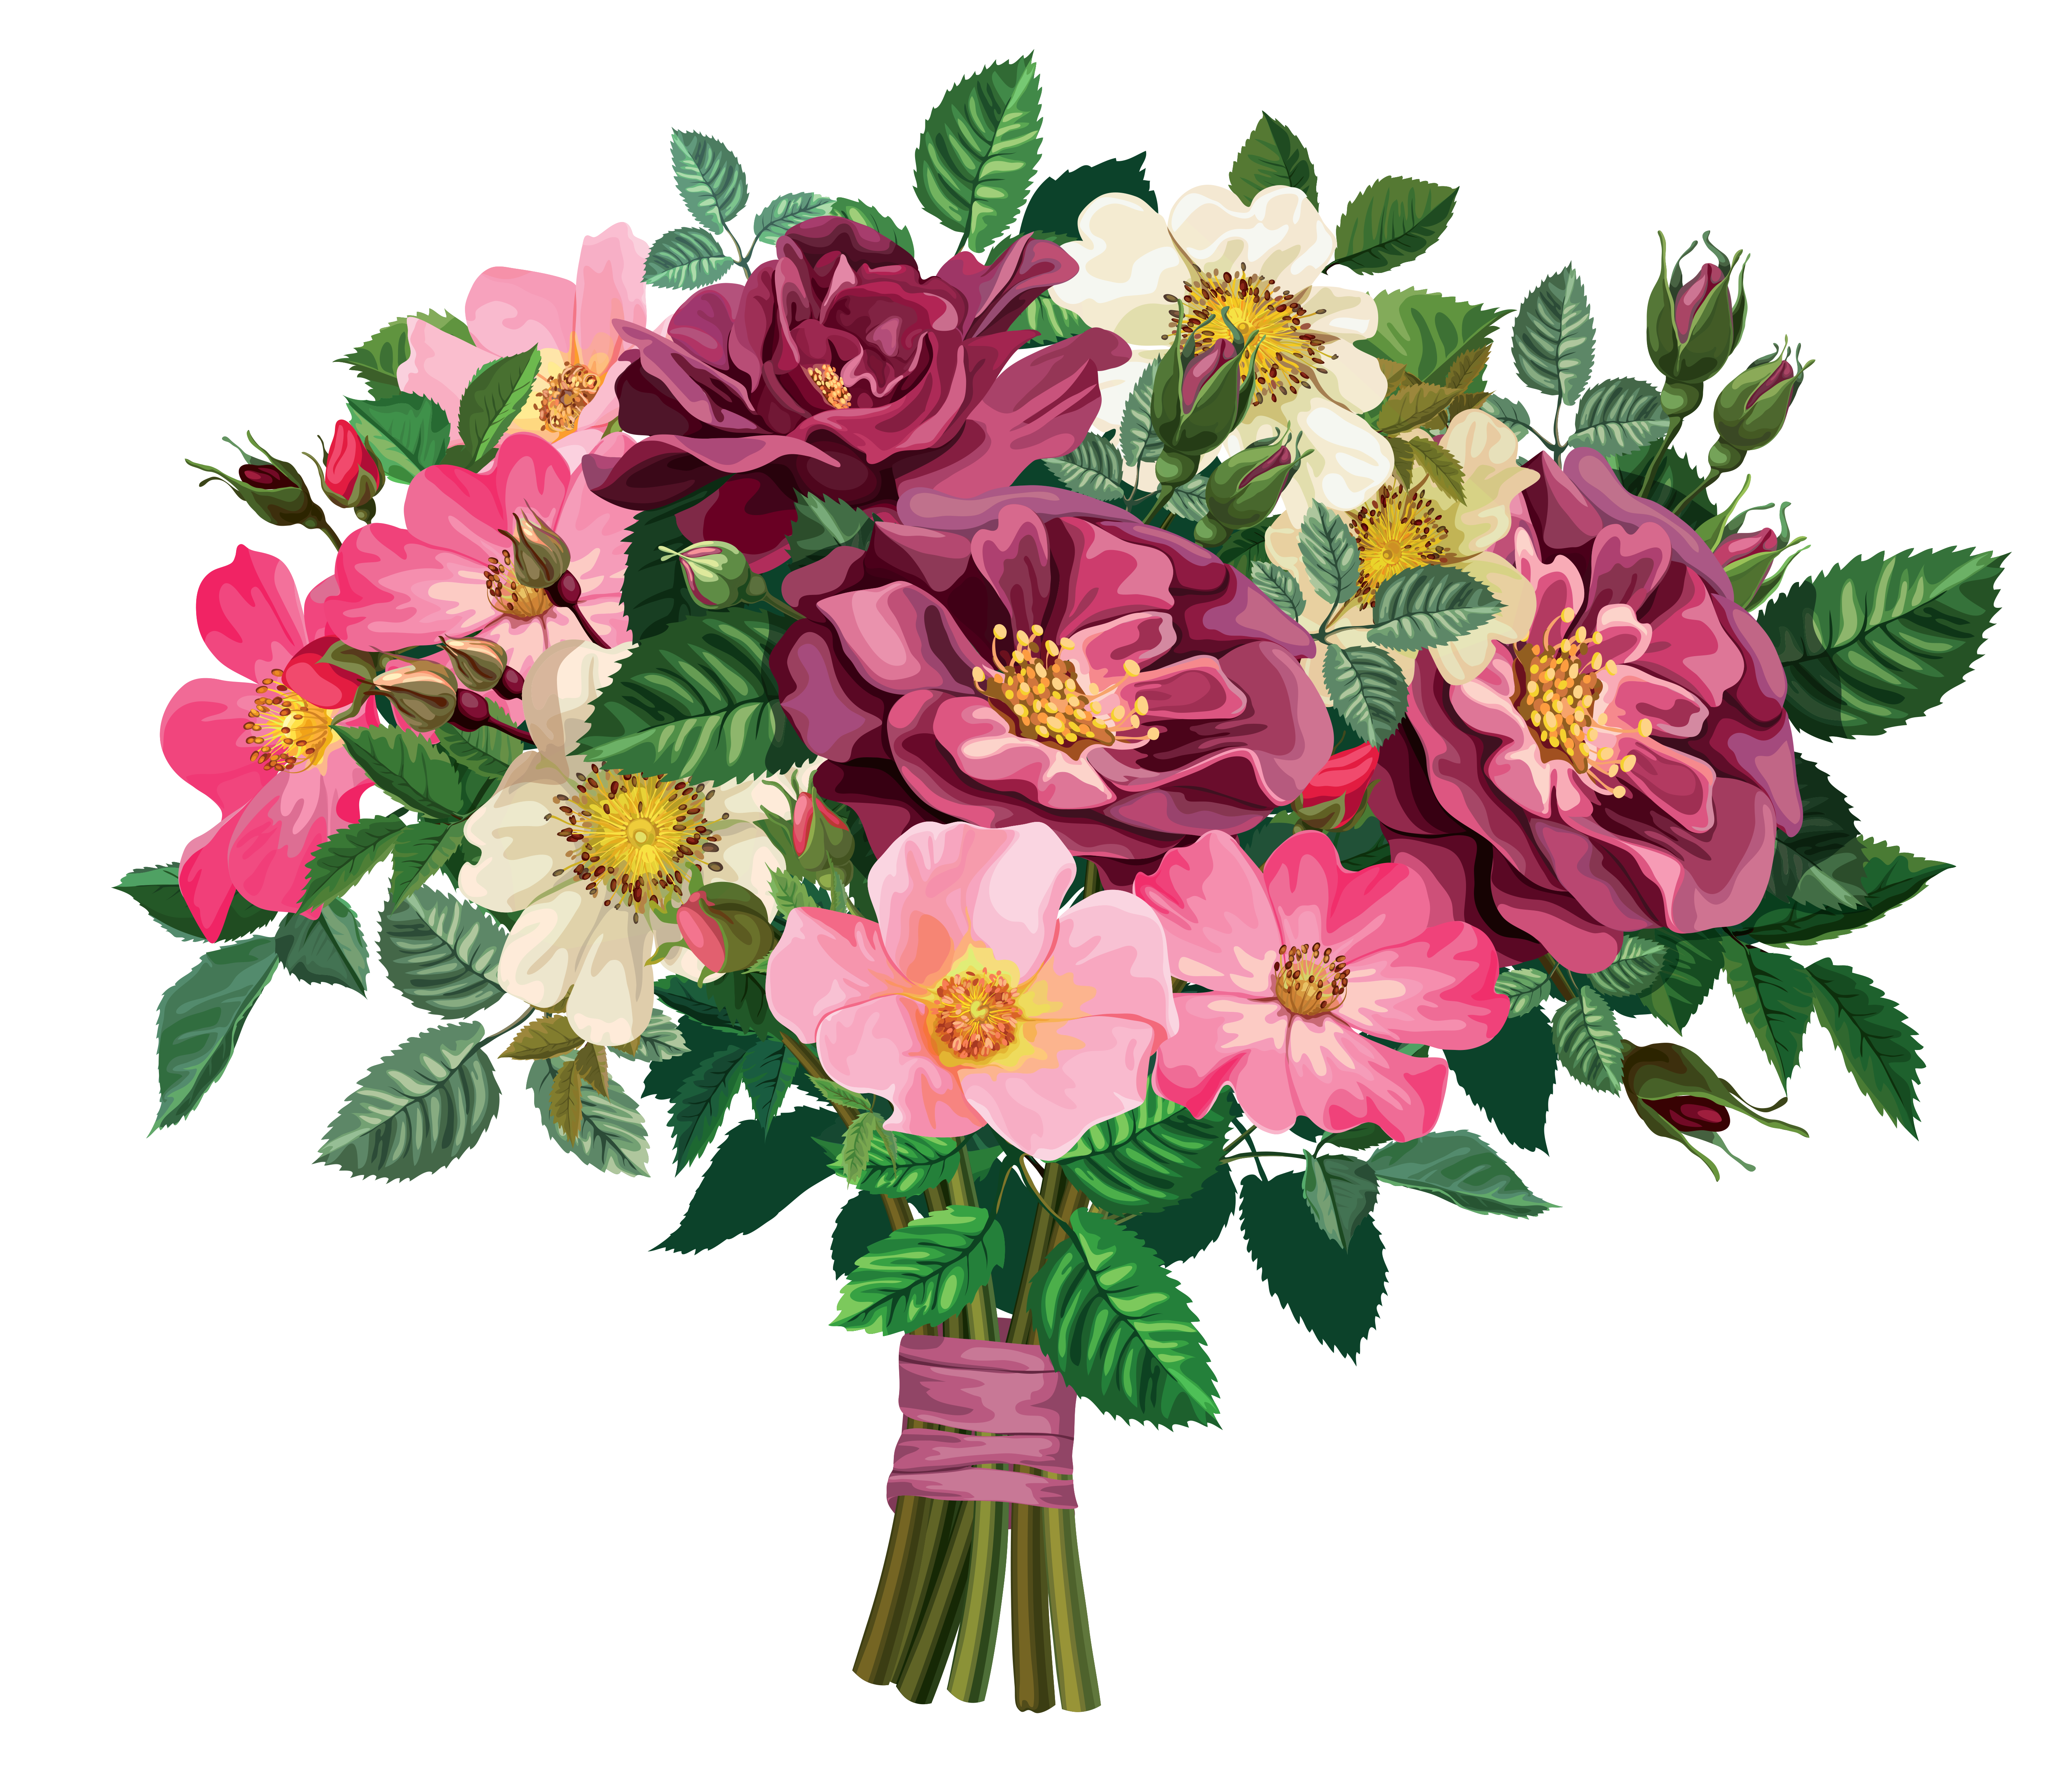 Bunch of flowers clip art png library stock Flower bunch clip art - ClipartFest png library stock